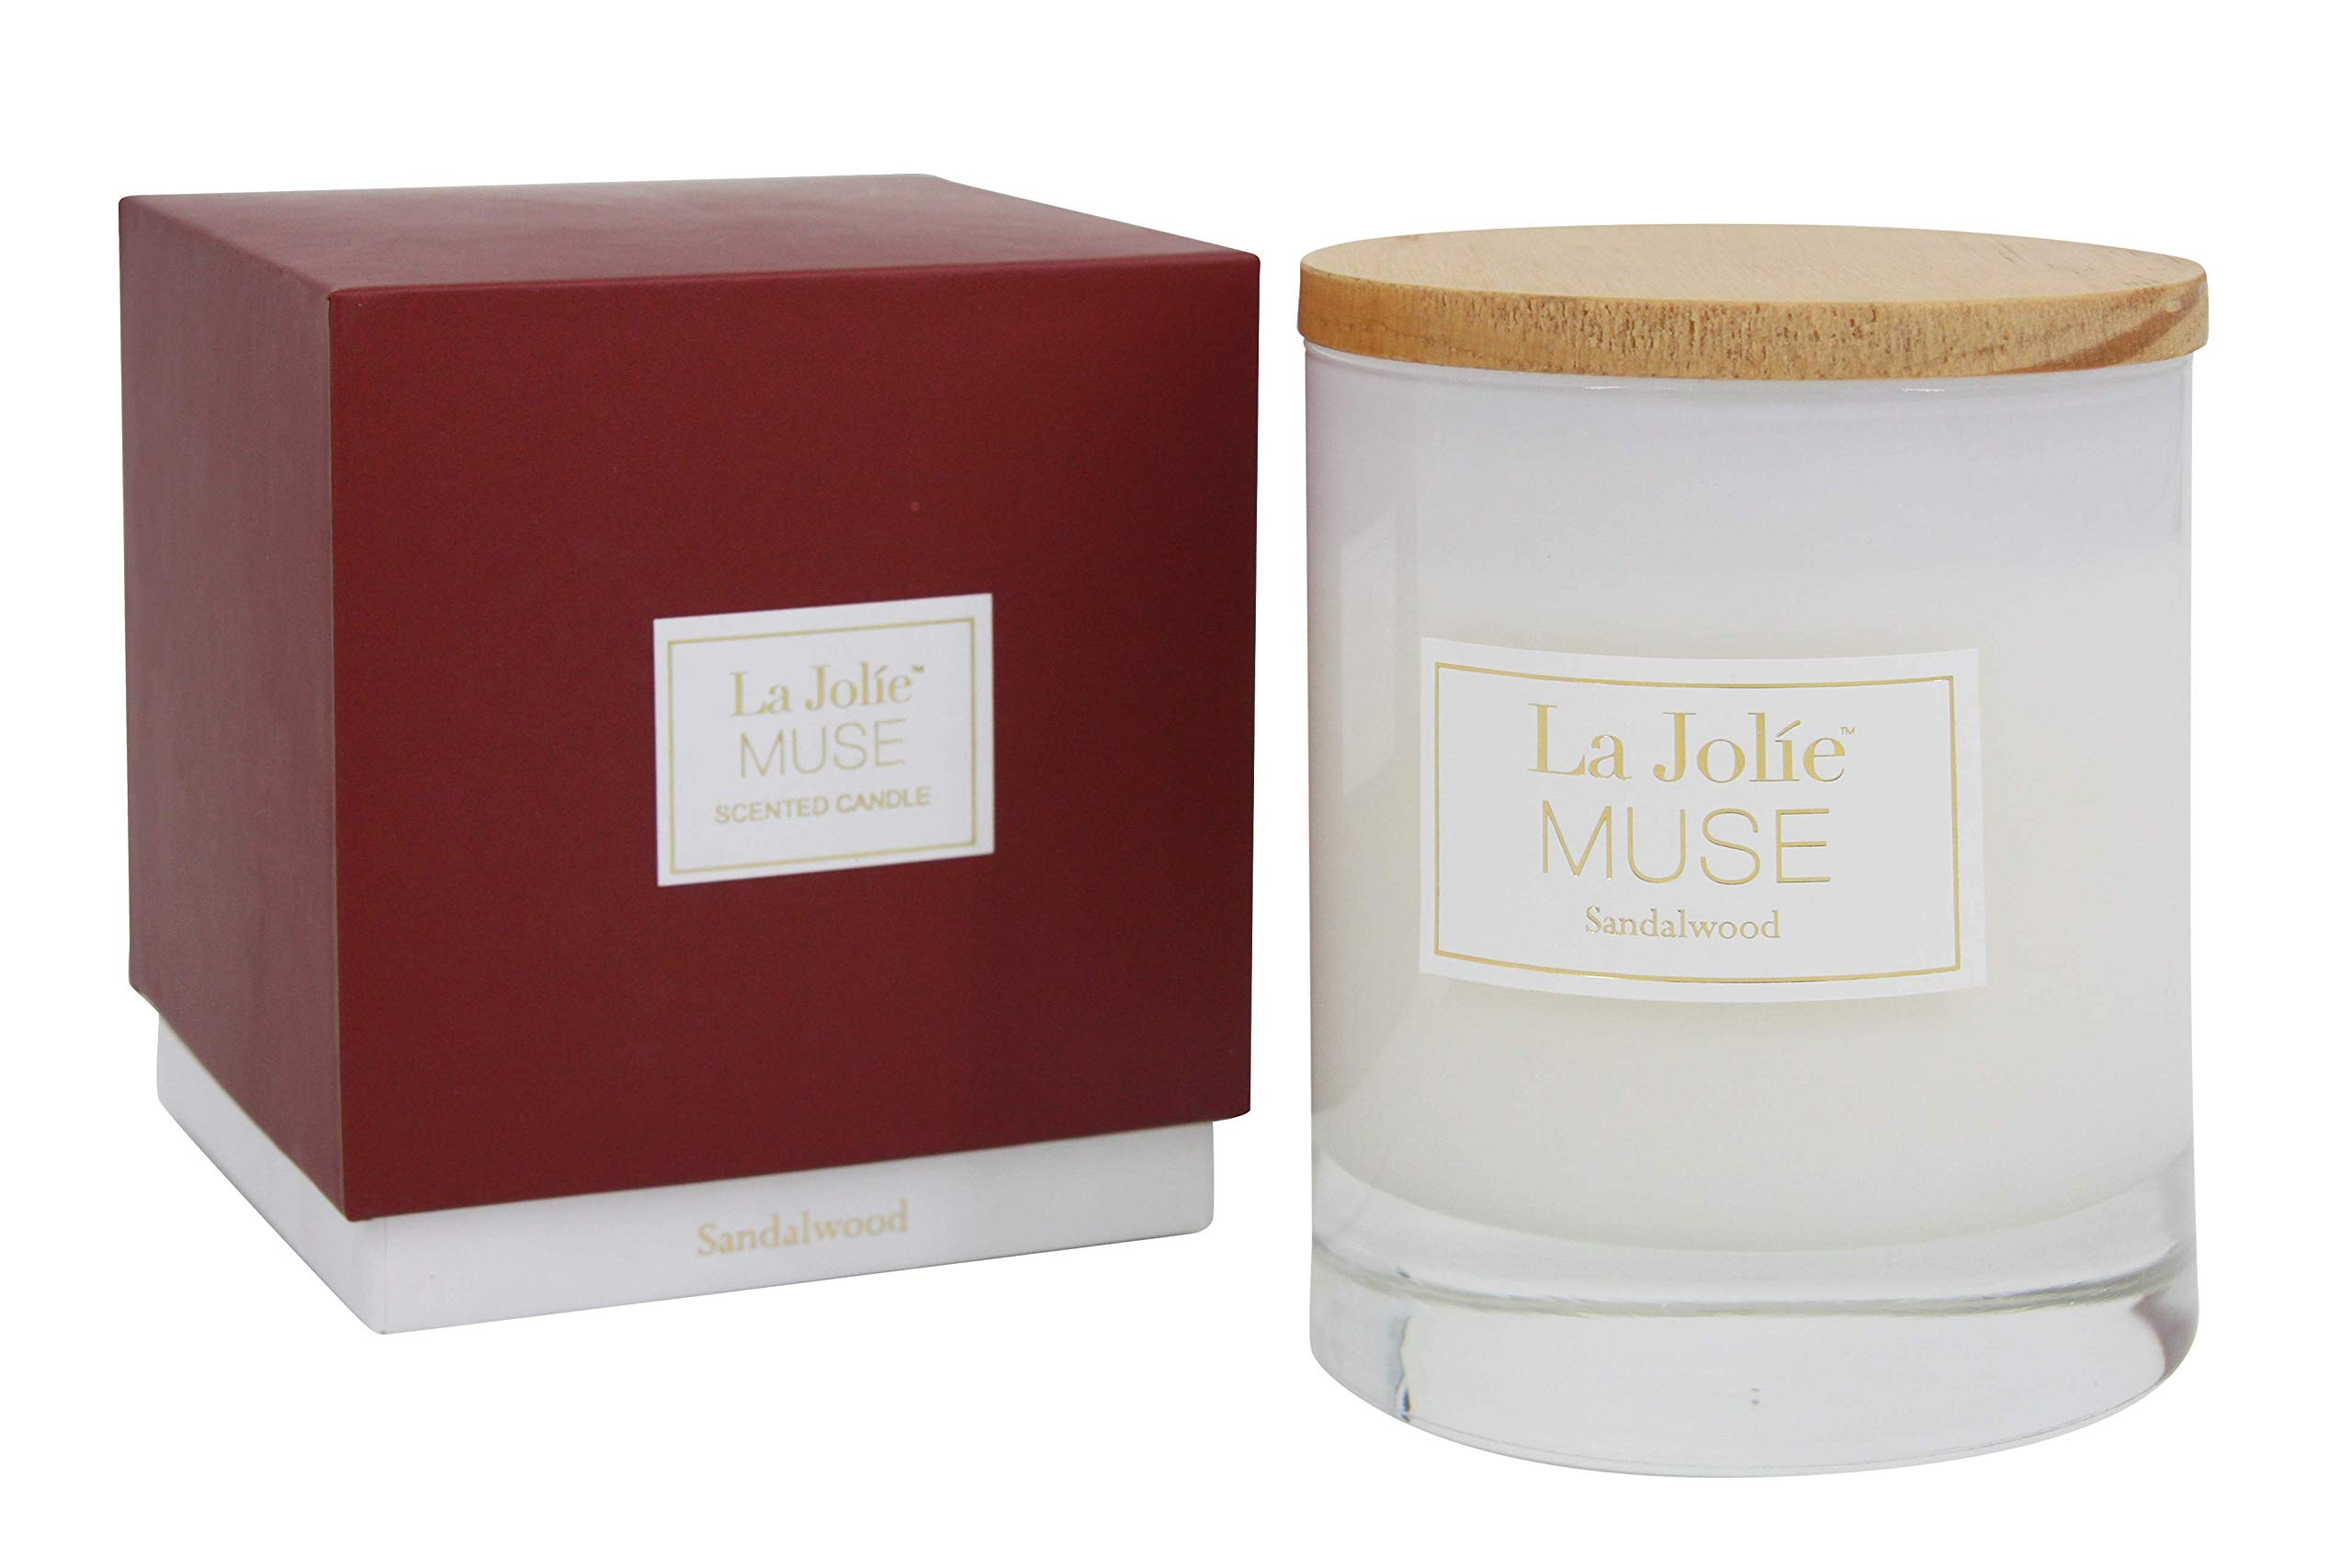 LA JOLIE MUSE Wood Wick Soy Candles Sandalwood Scented Glass Jar Candle, 45 Hours Burning, Gift by LA JOLIE MUSE (Image #6)